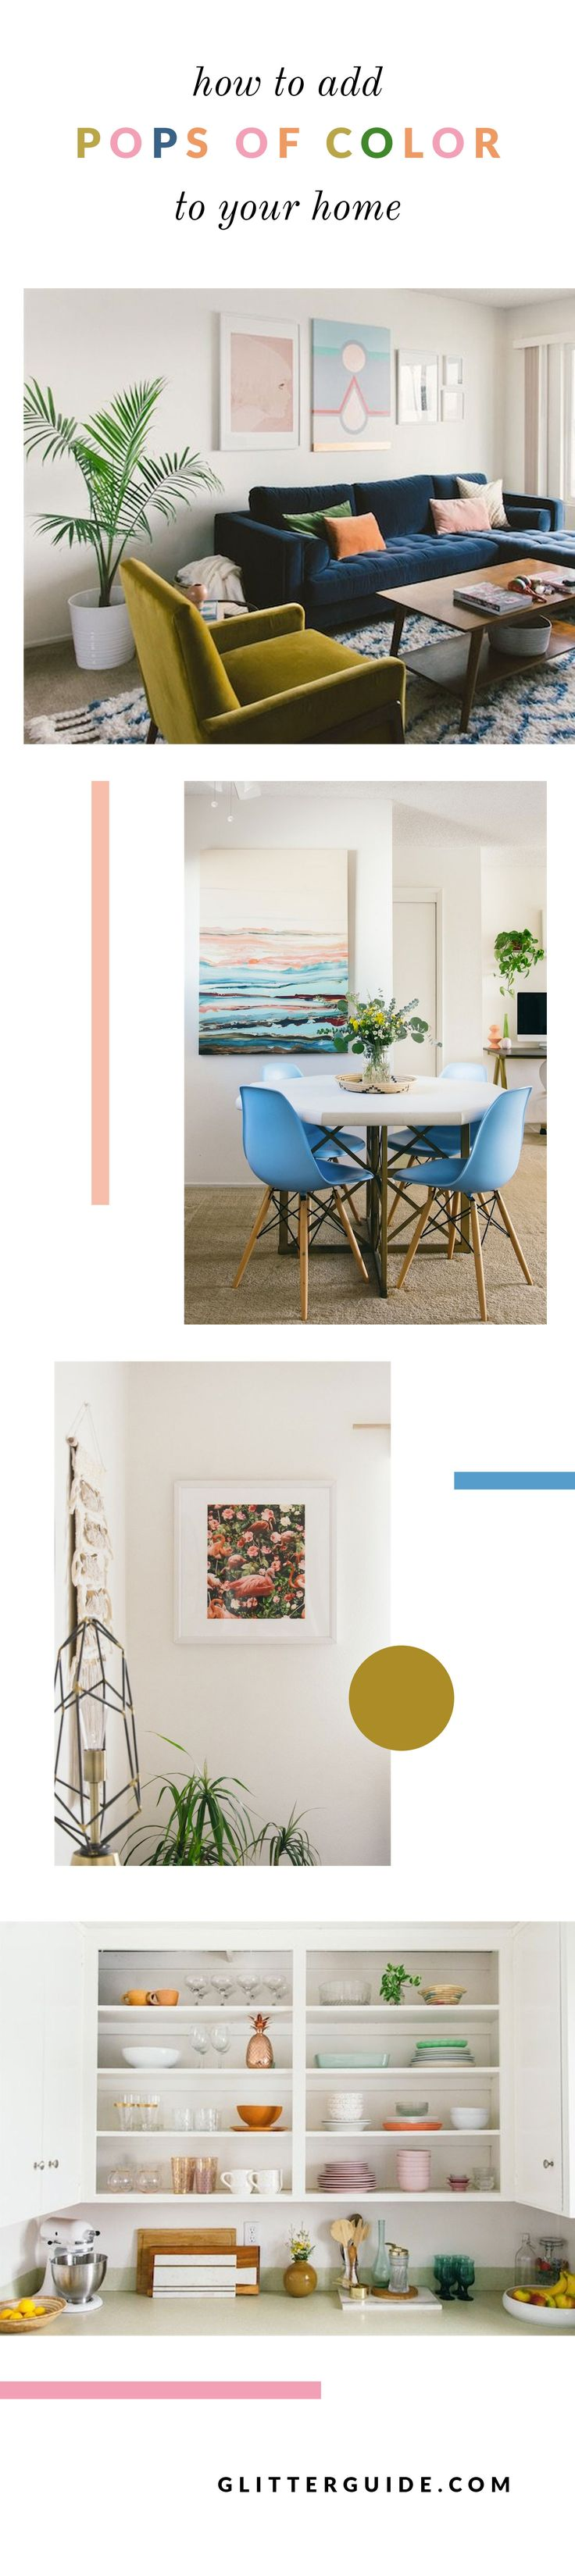 how to add pops of color to your home